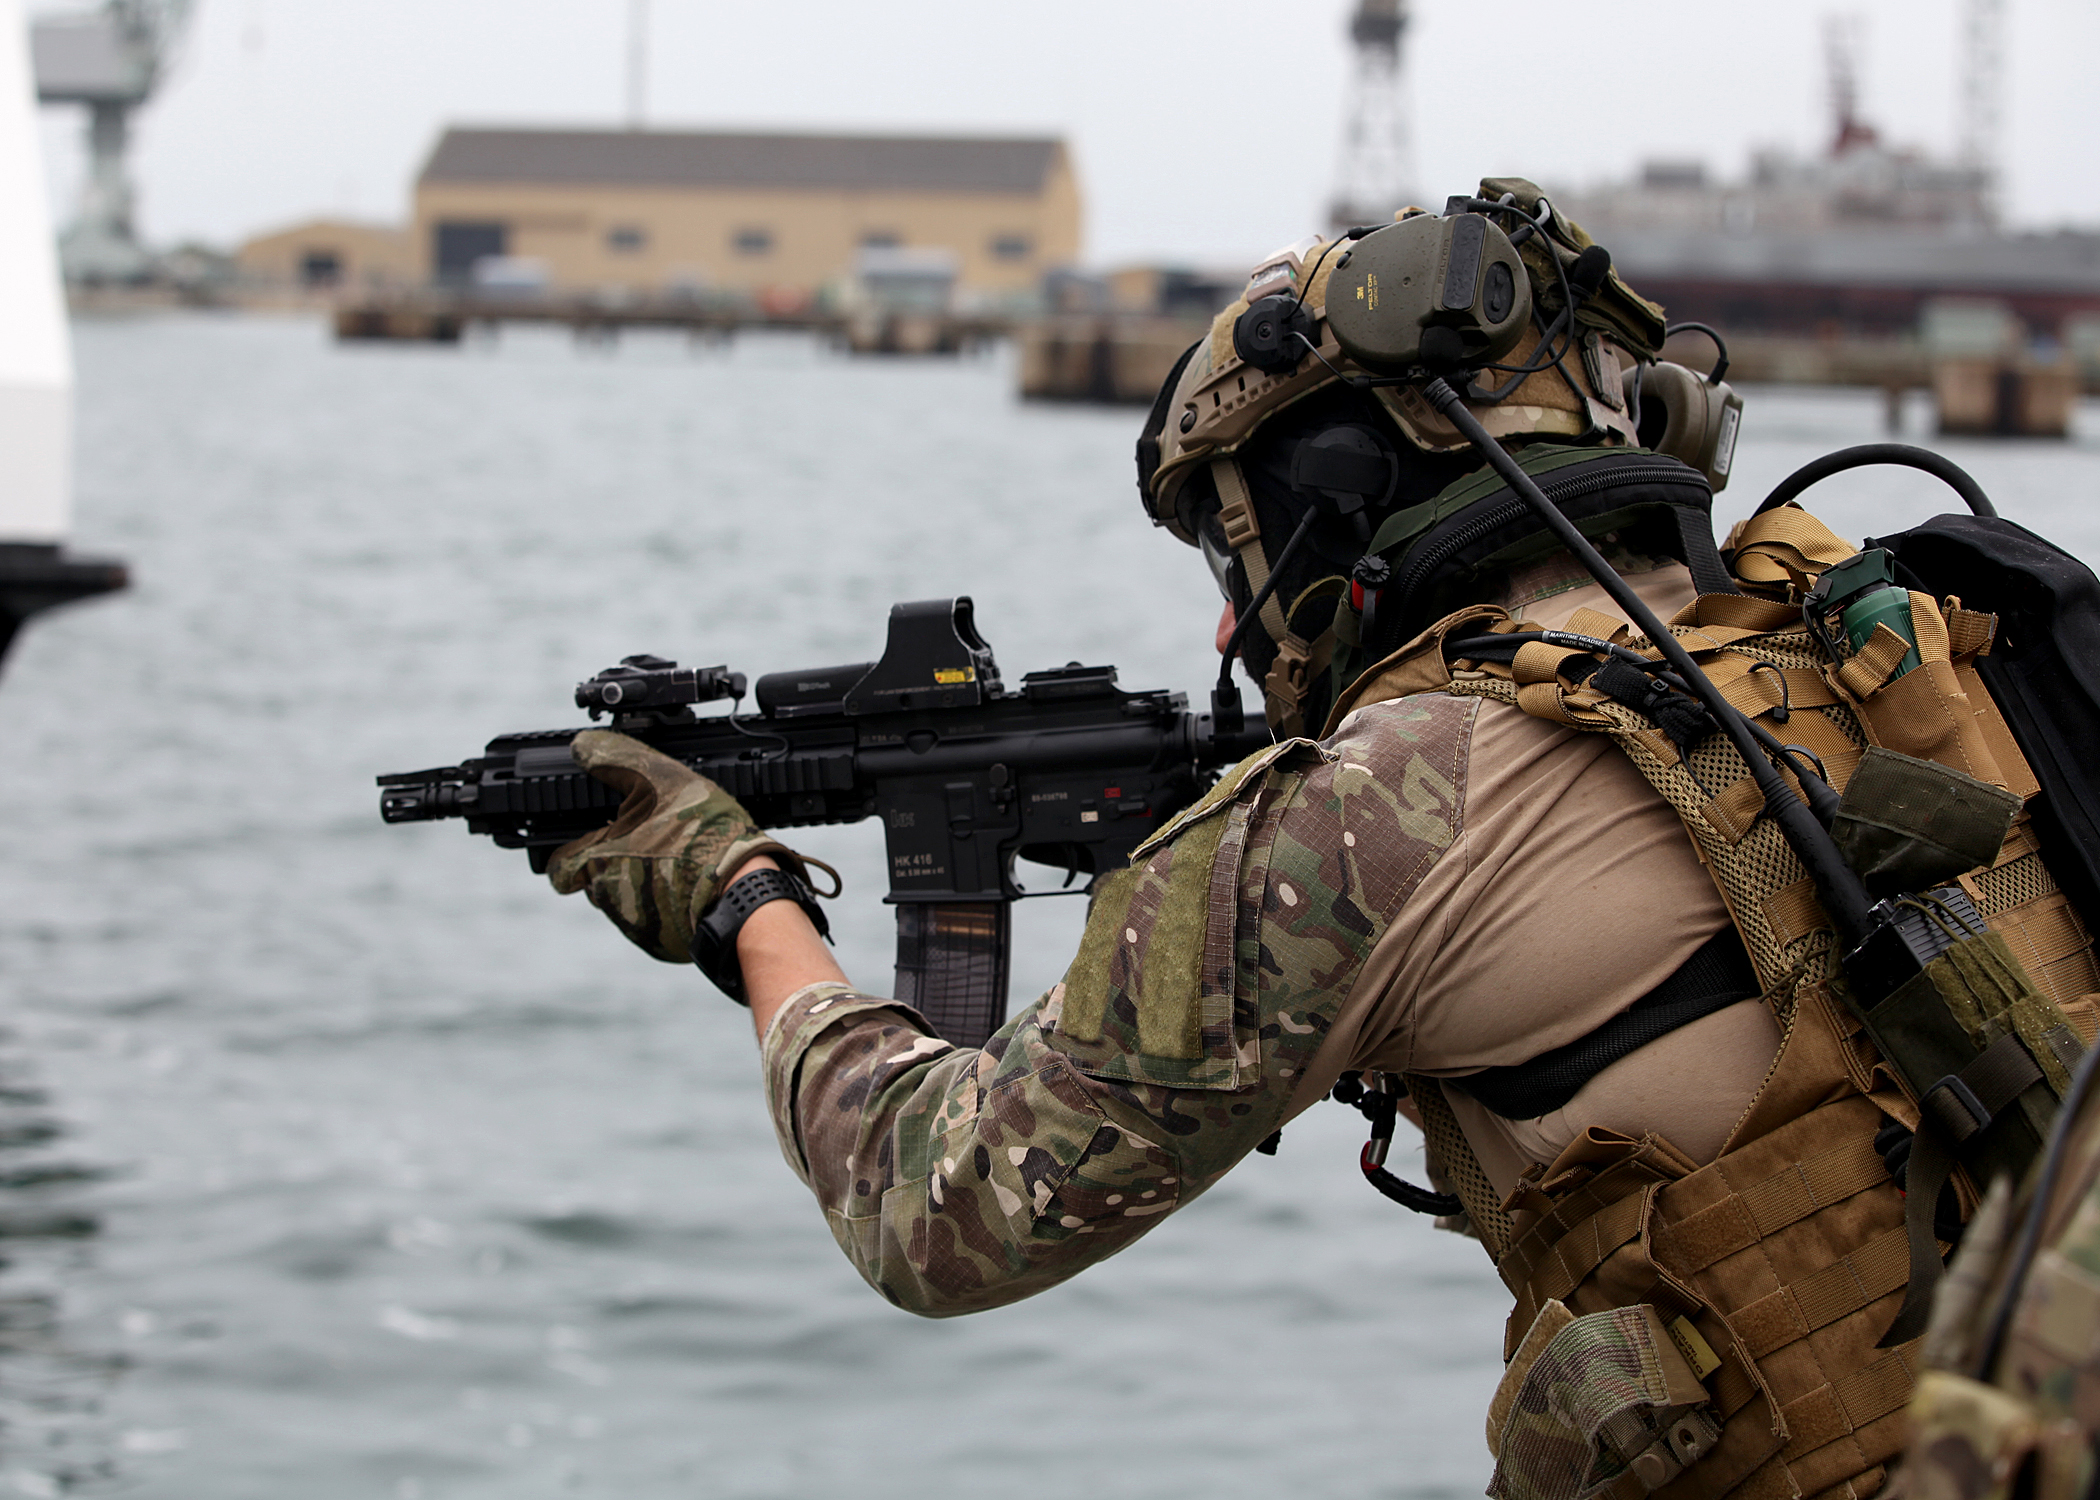 Developments in Special Operations Forces (SOF) - Armada